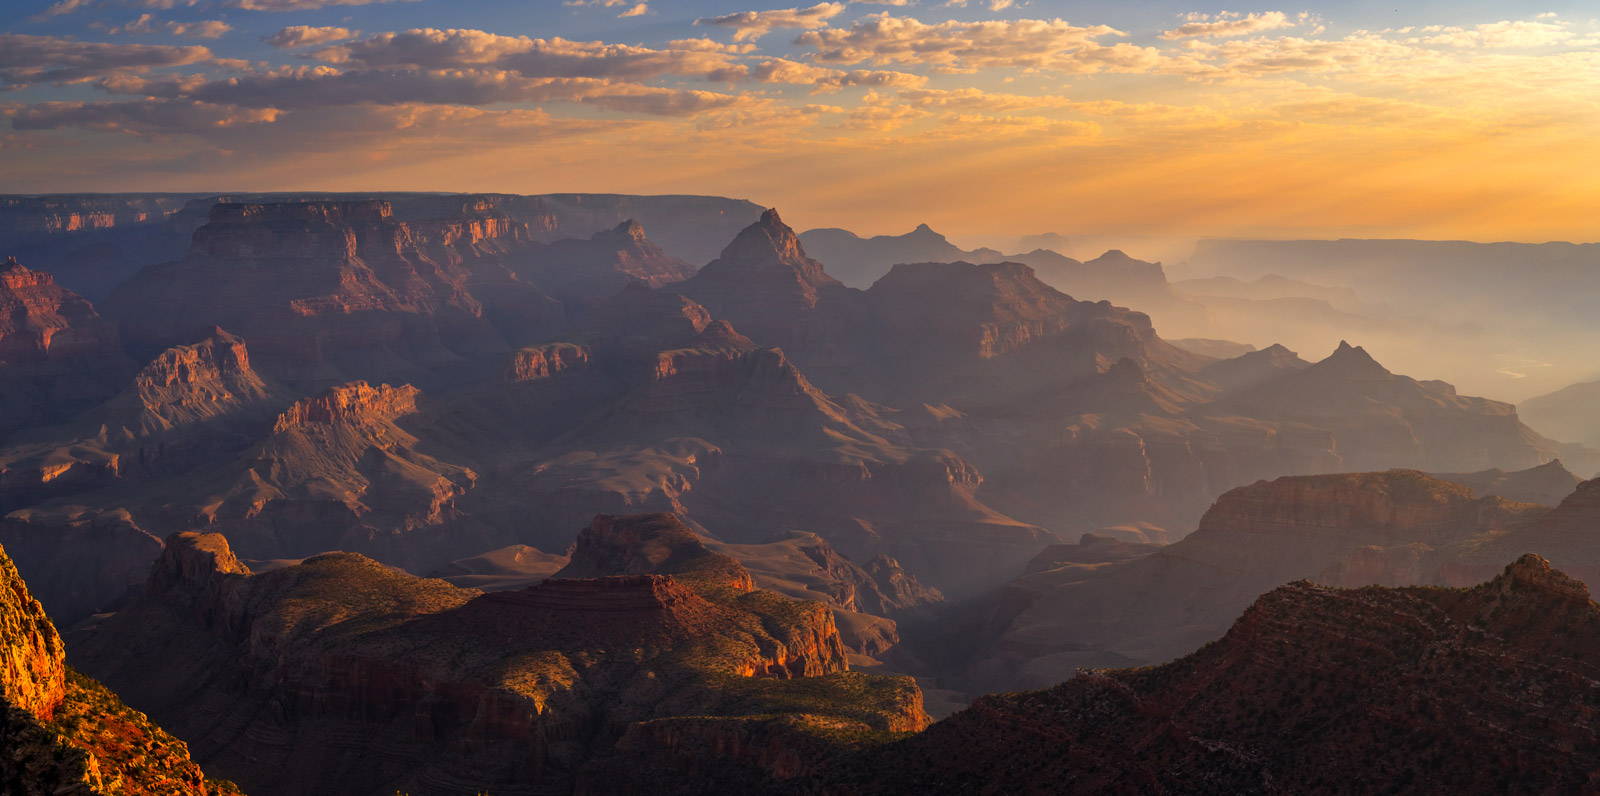 Arizona, Grand Canyon, Grandview, Sunrise, limited edition, photograph, fine art, landscape, photo